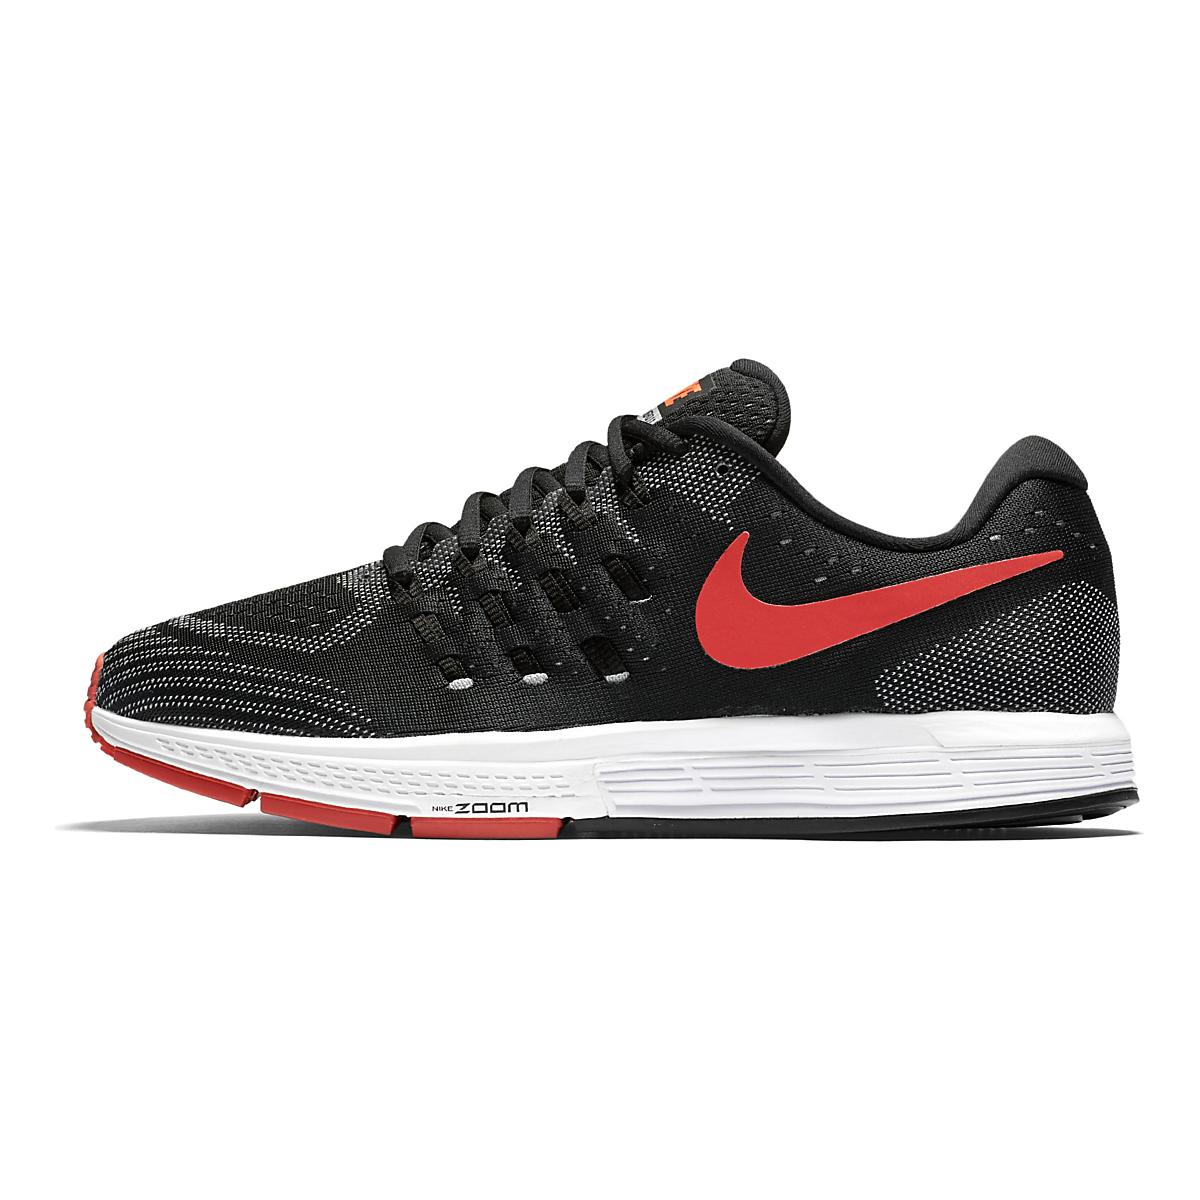 d38873ee5047d Mens Nike Air Zoom Vomero 11 Running Shoe at Road Runner Sports